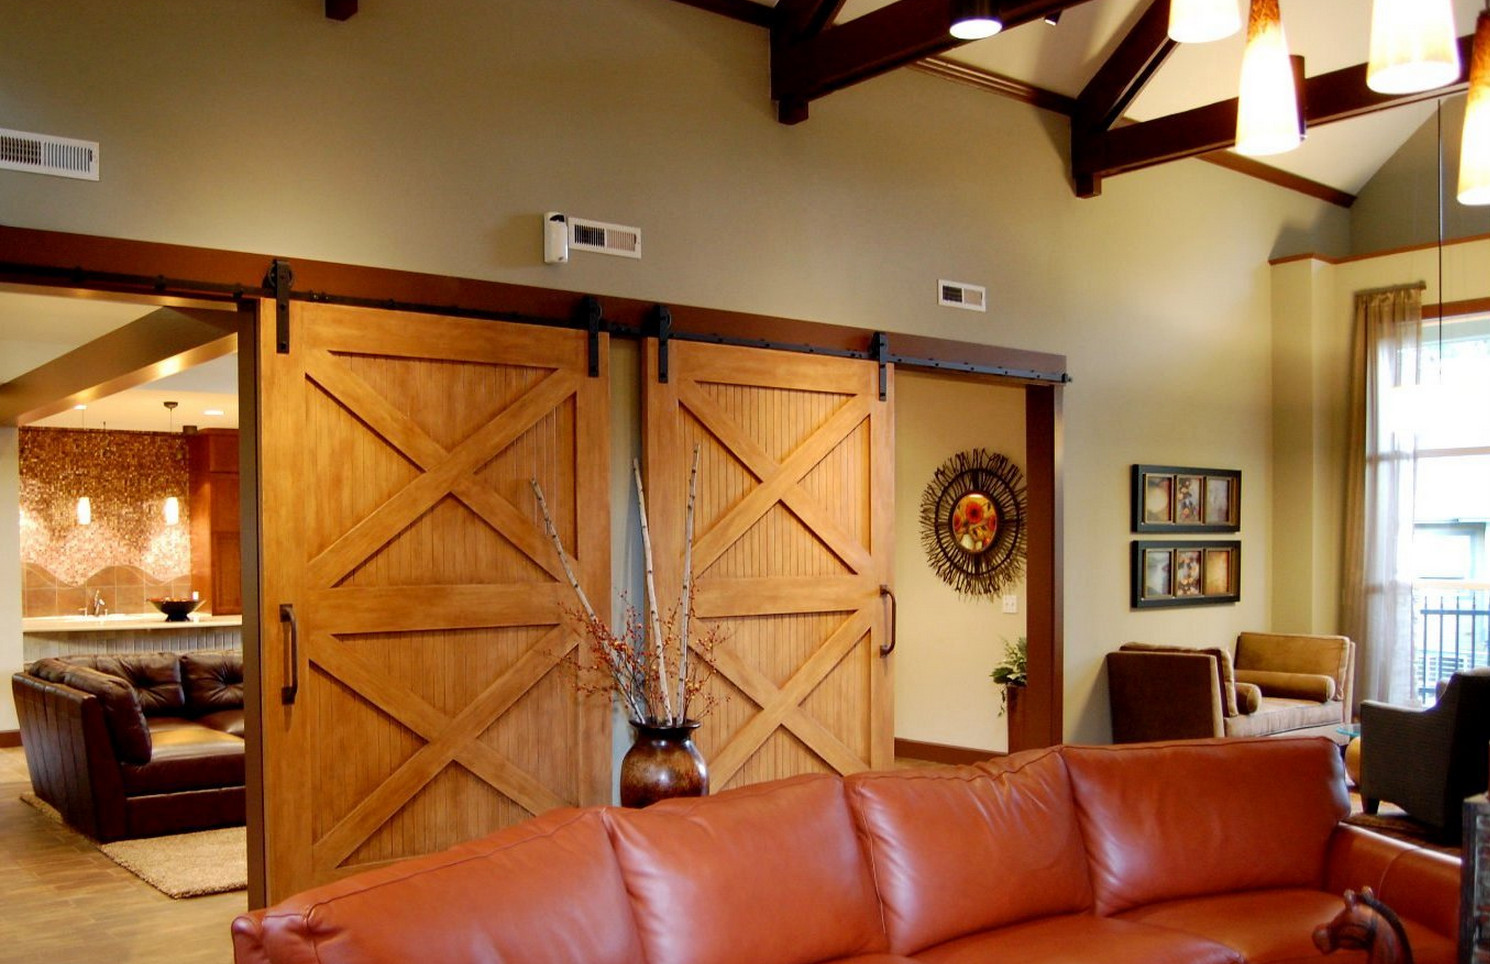 Barn Door Room Divider Interesting Ideas For Home